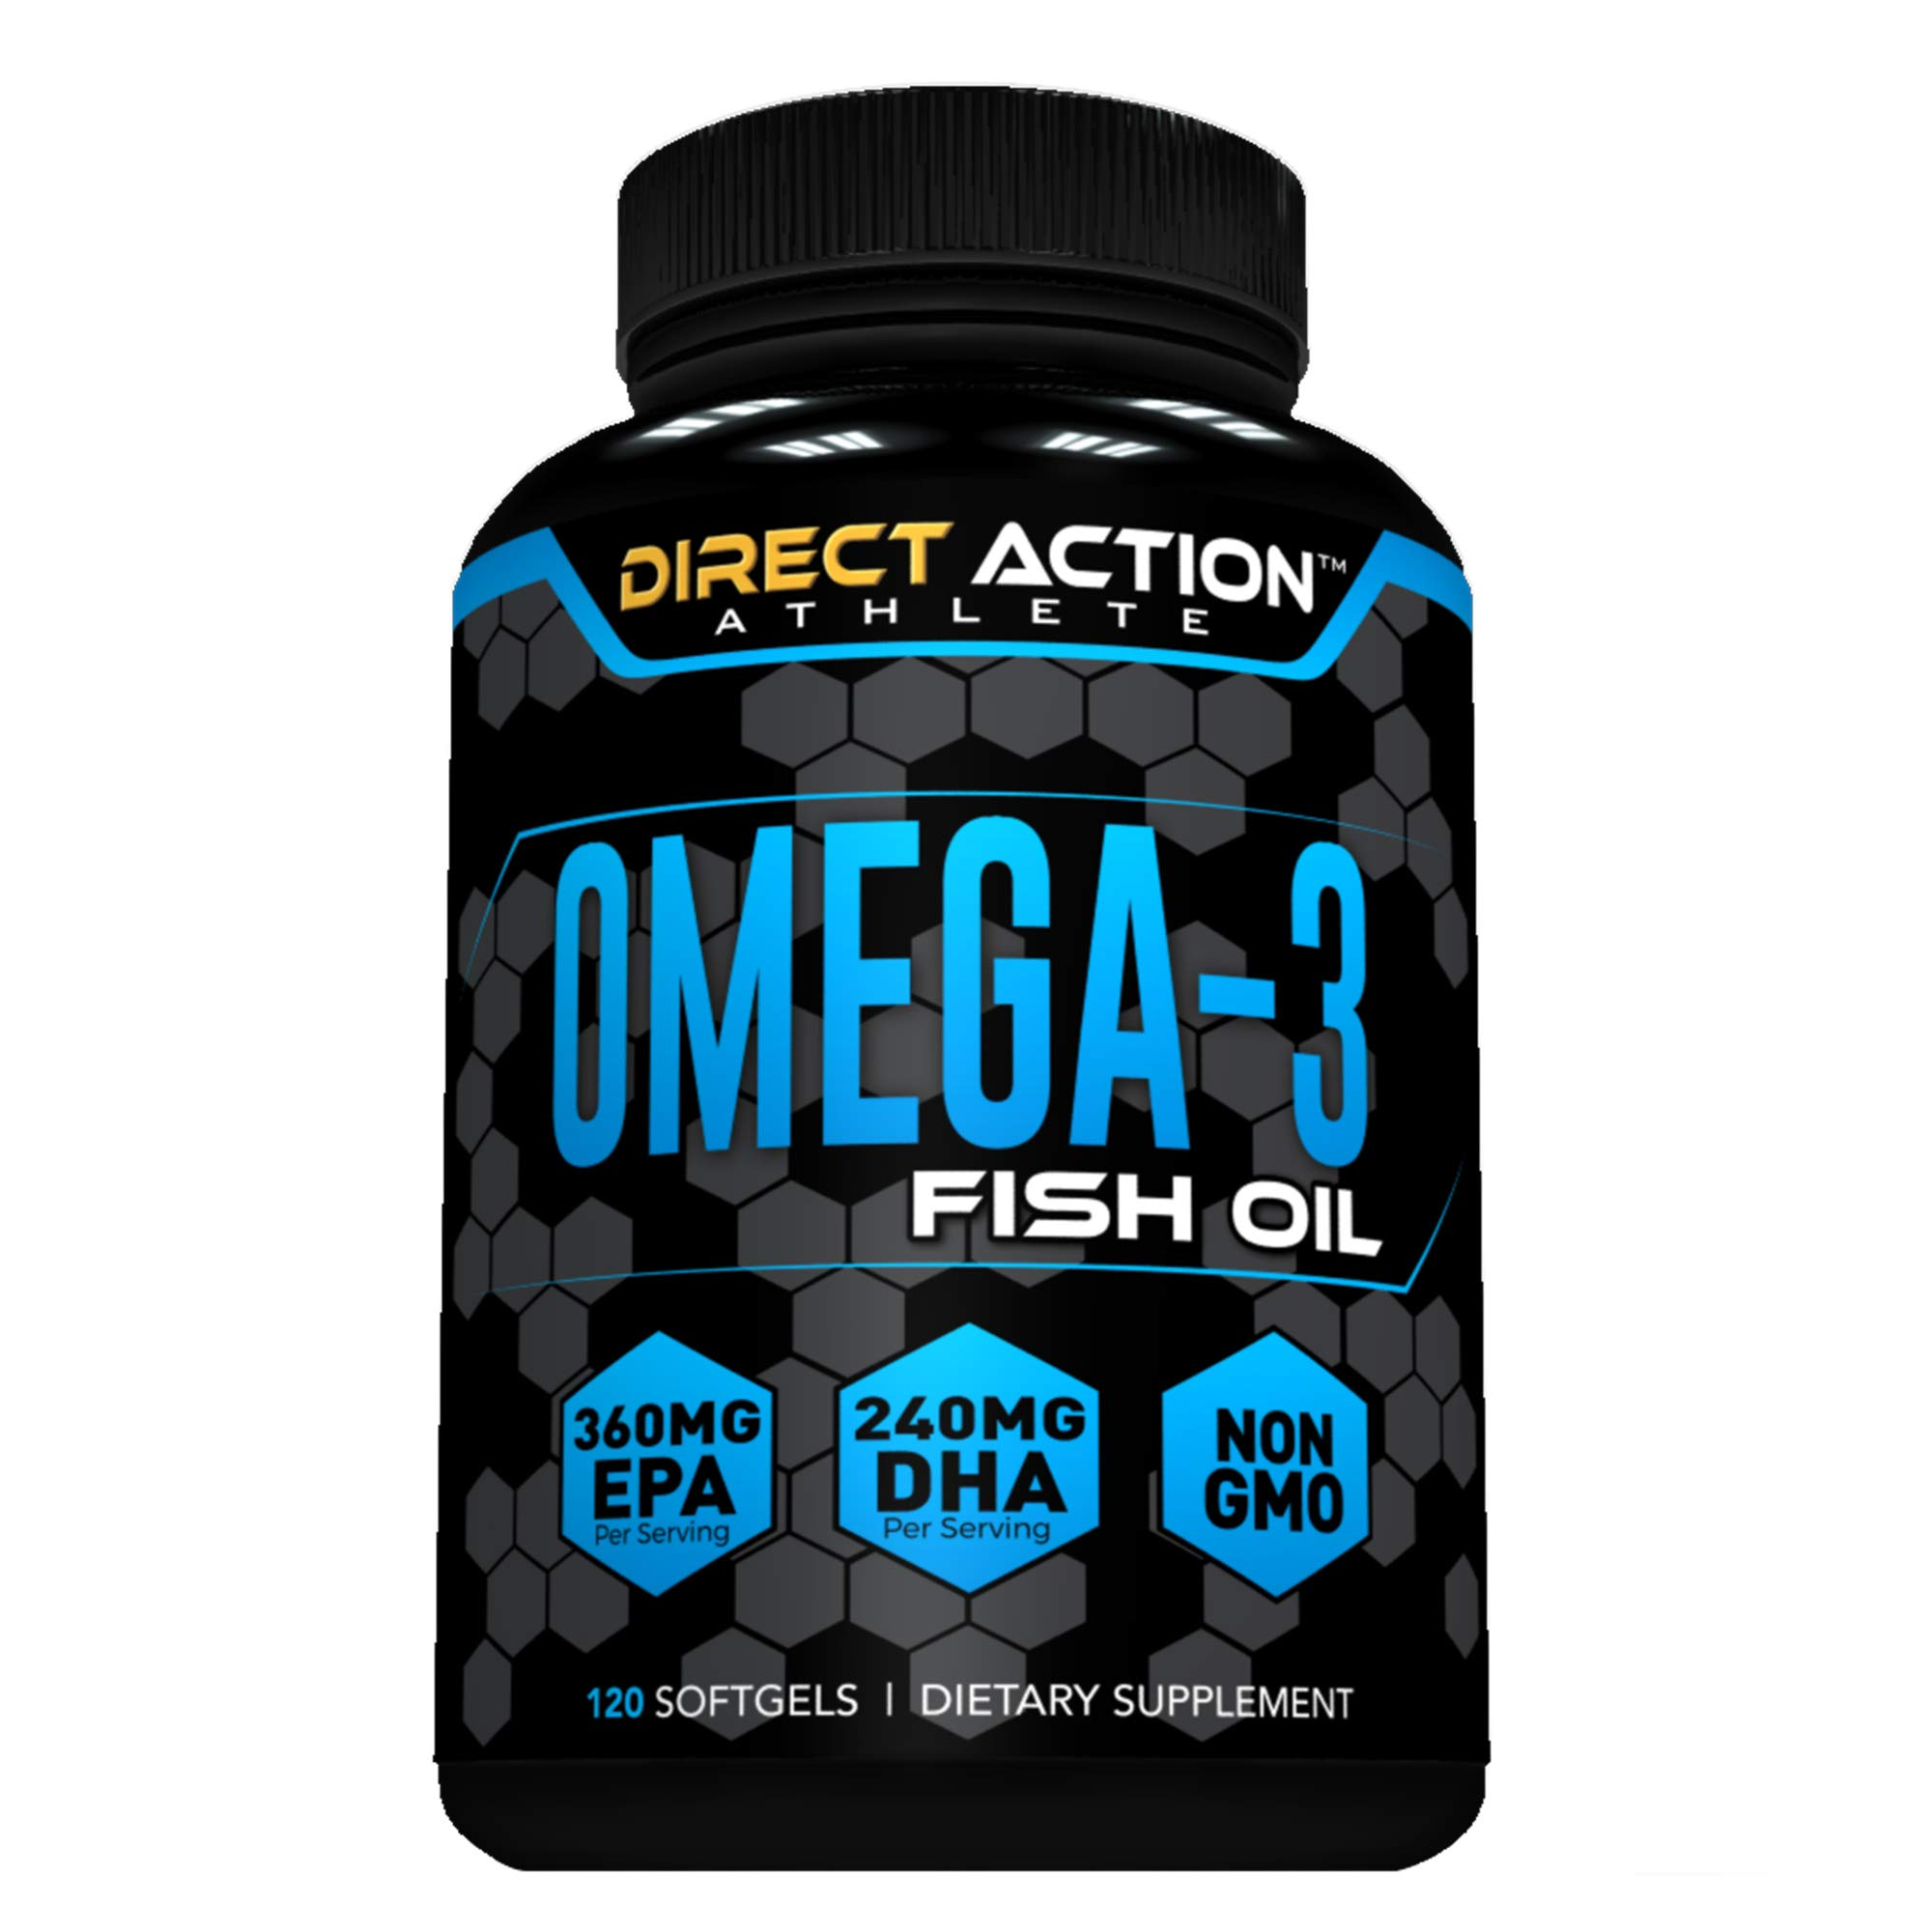 Omega 3 Fish Oil, Non-GMO, 360mg EPA, 240mg DHA per serving, GMP-Certified, 120 Counts by Direct Action Athlete